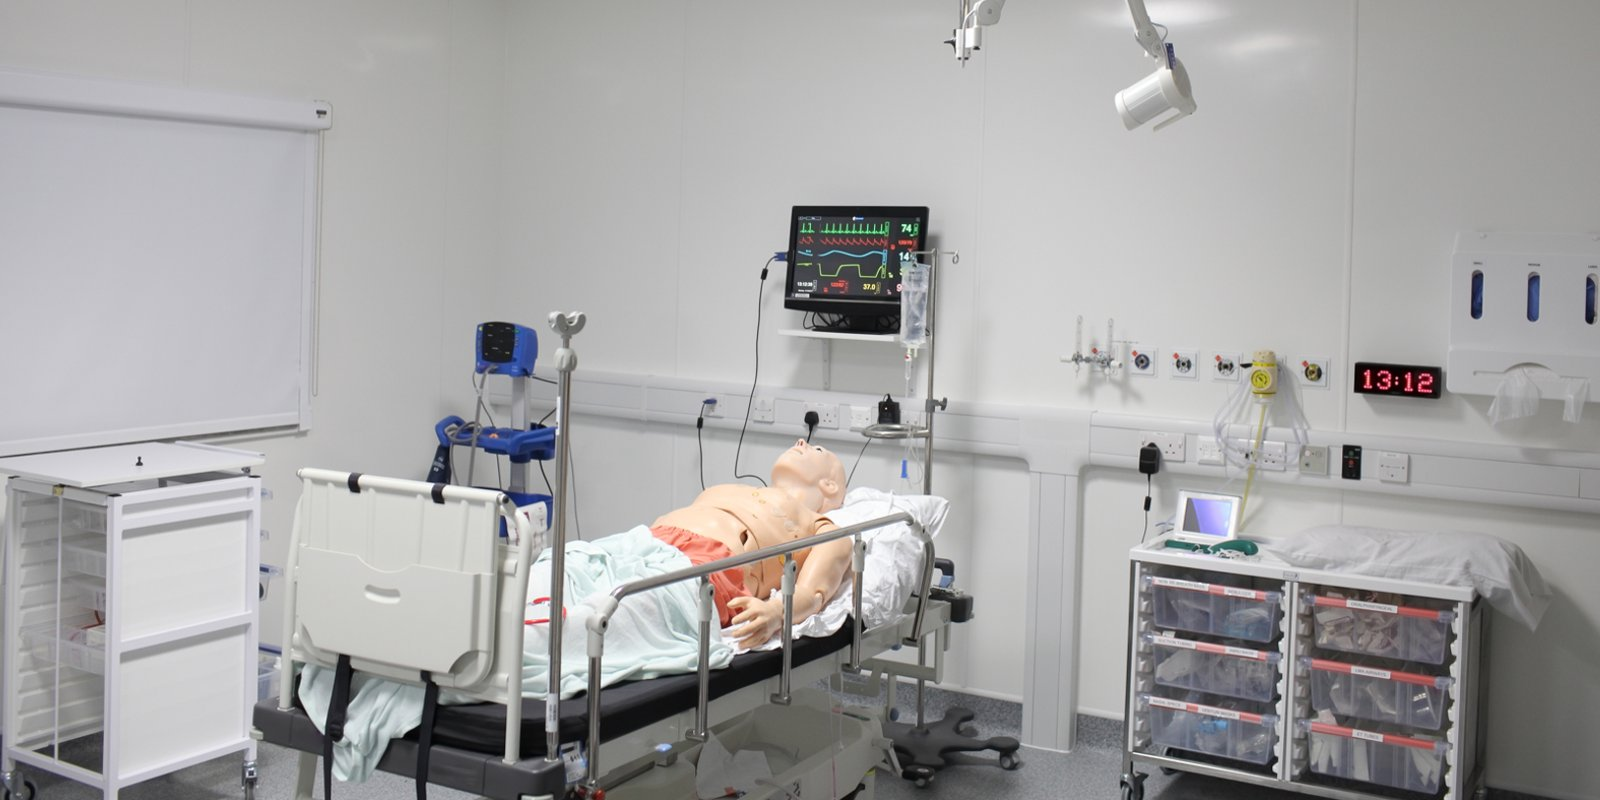 Use e-Simulation technology to learn Advanced Cardiac Life Support (ACLS)